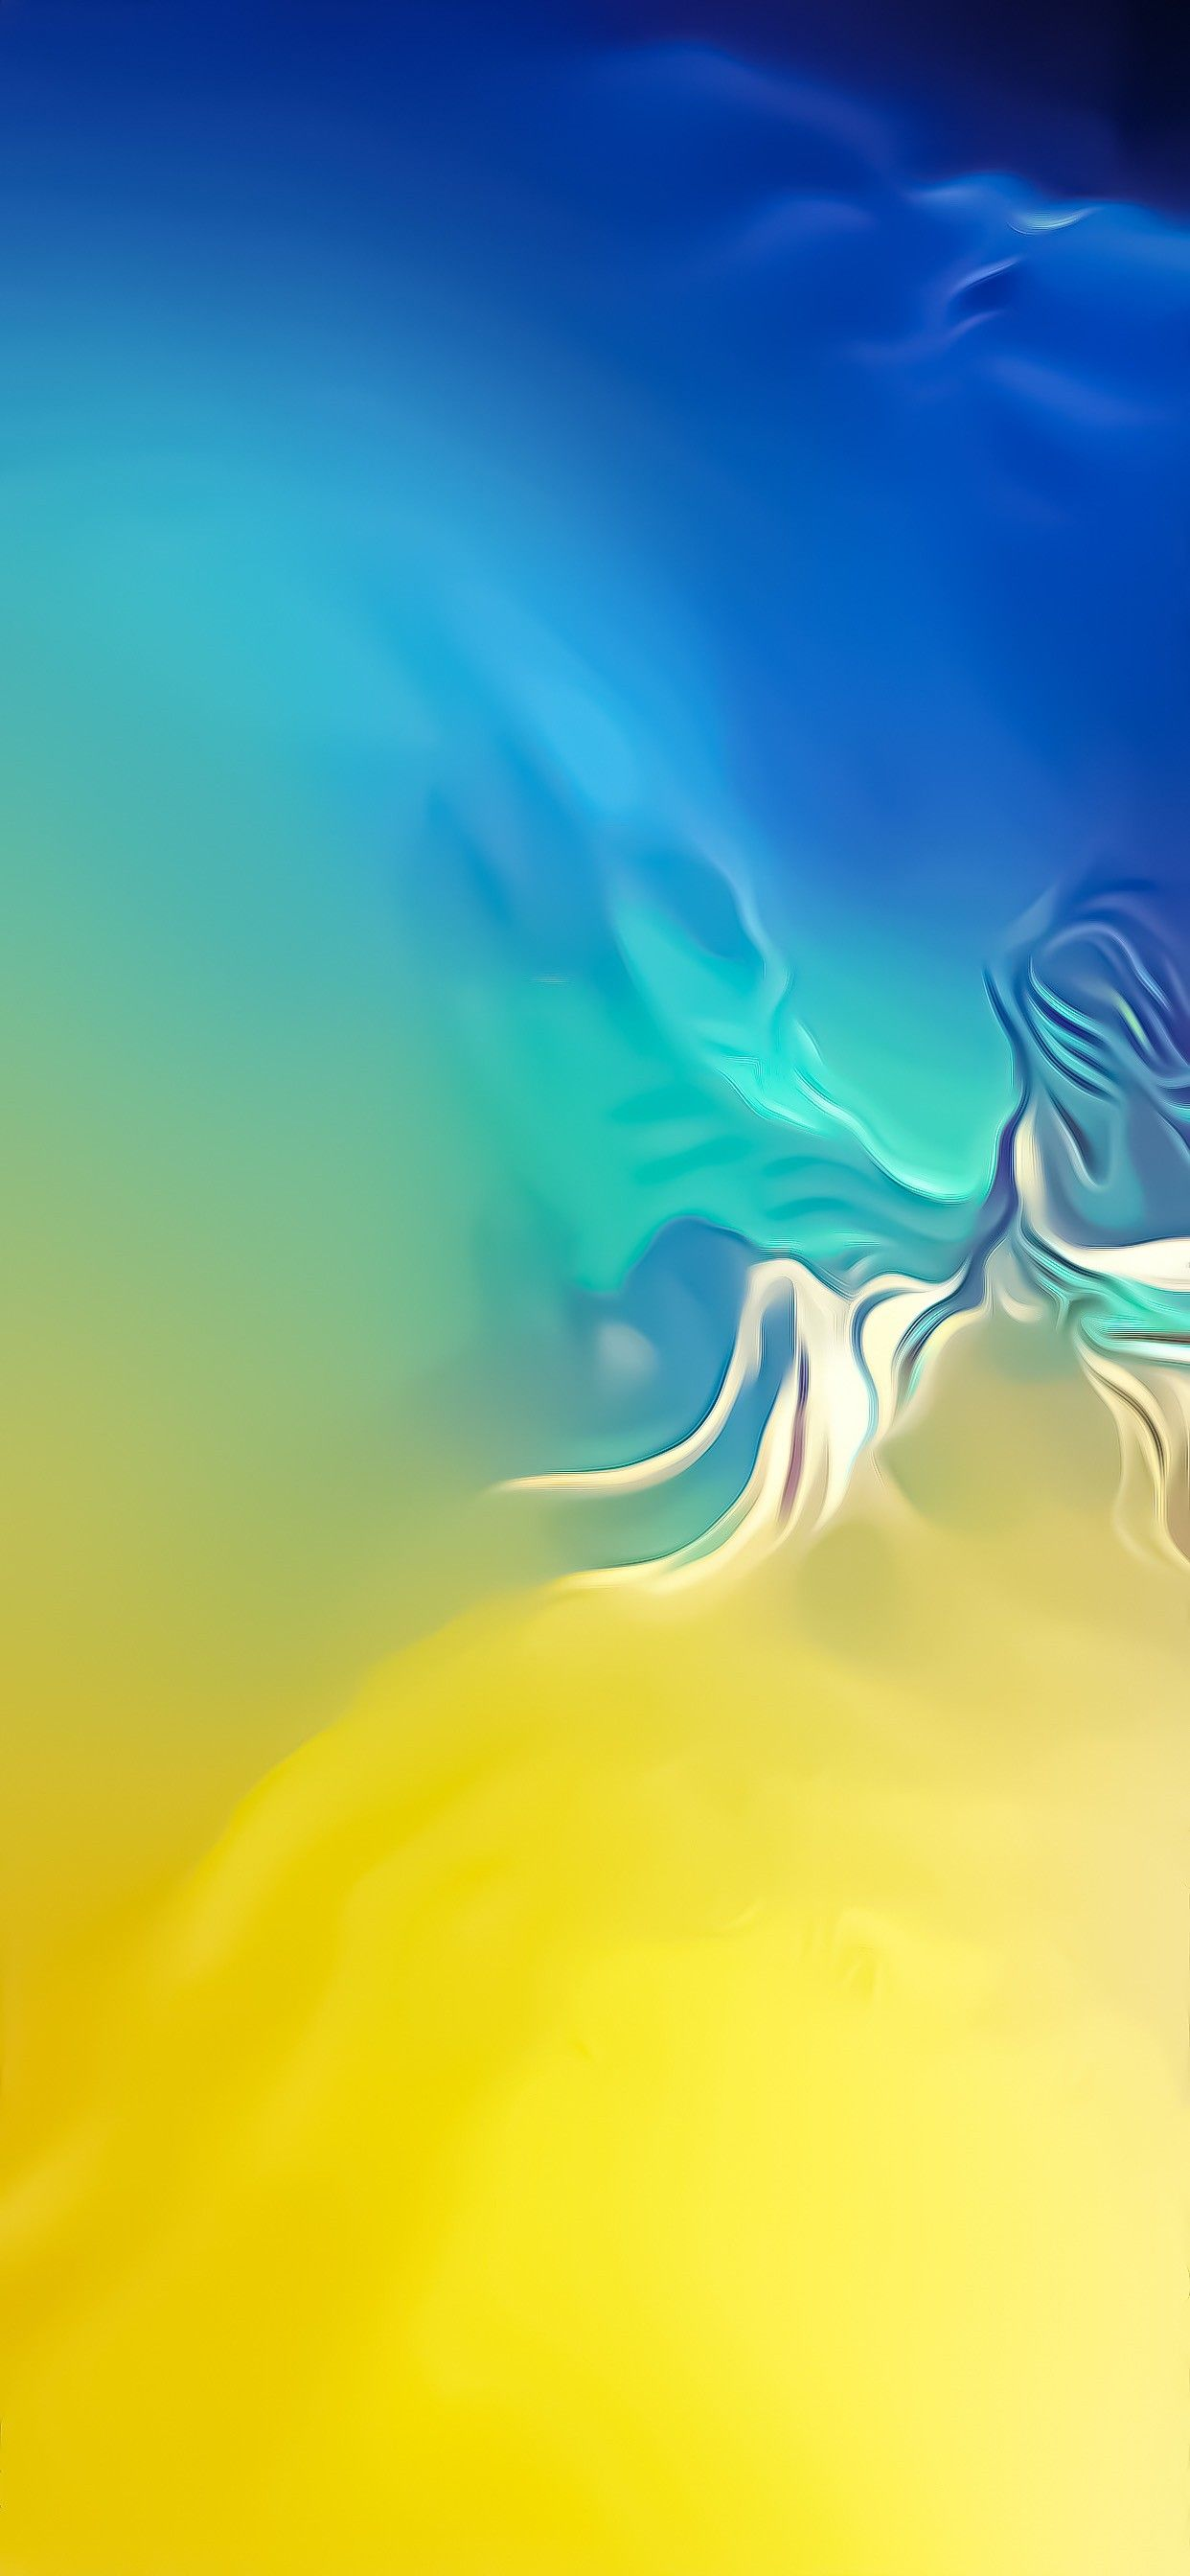 Galaxy S10 | Abstract °Amoled °Liquid °Gradient in 2019 | Galaxy wallpaper, Wallpaper, Iphone ...